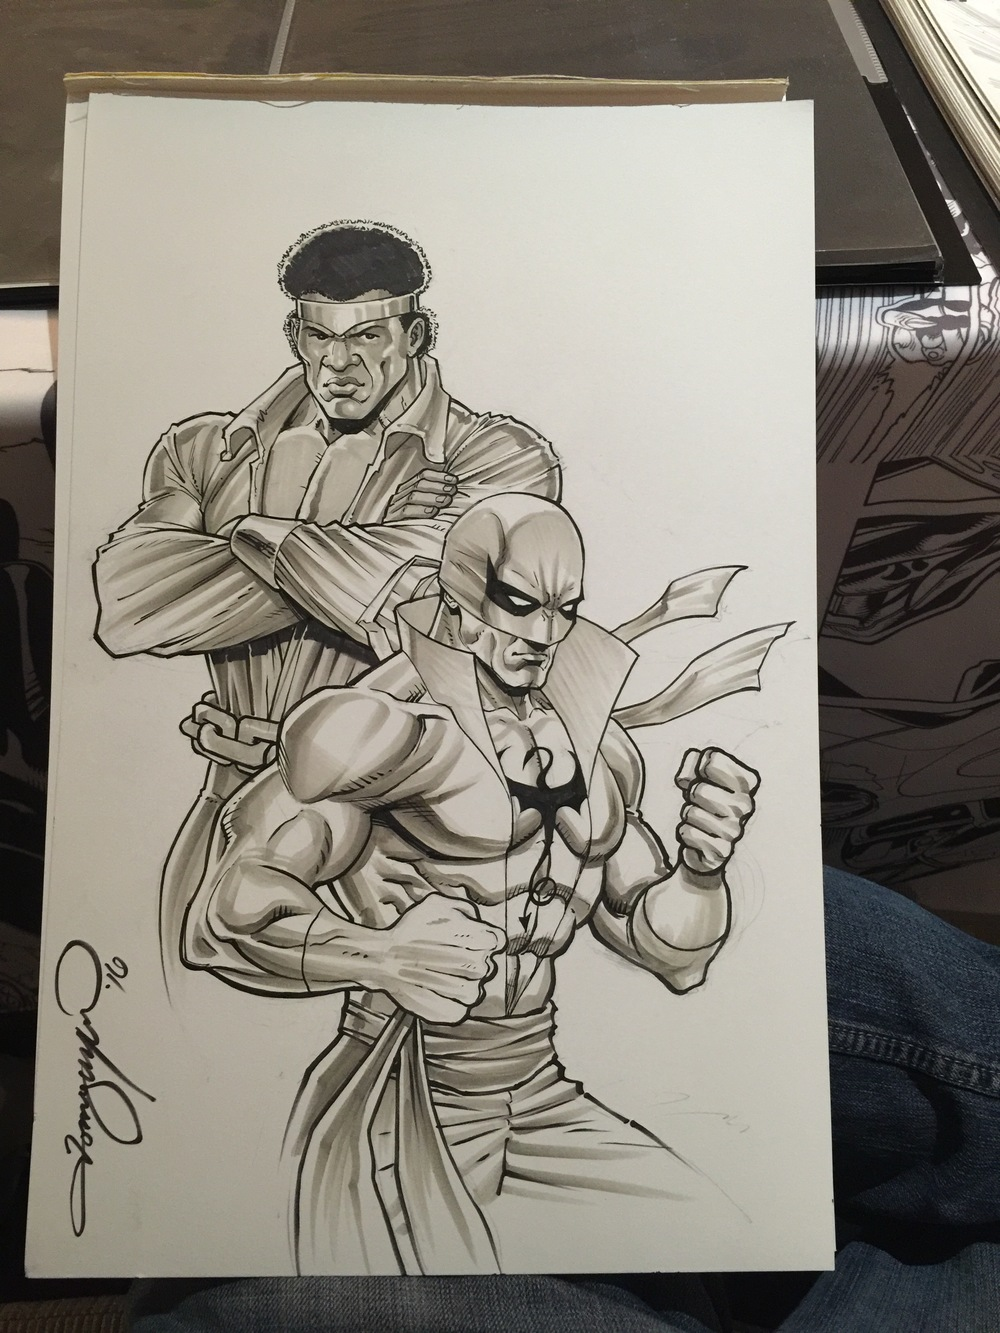 The finished Power Man/Iron Fist sketch